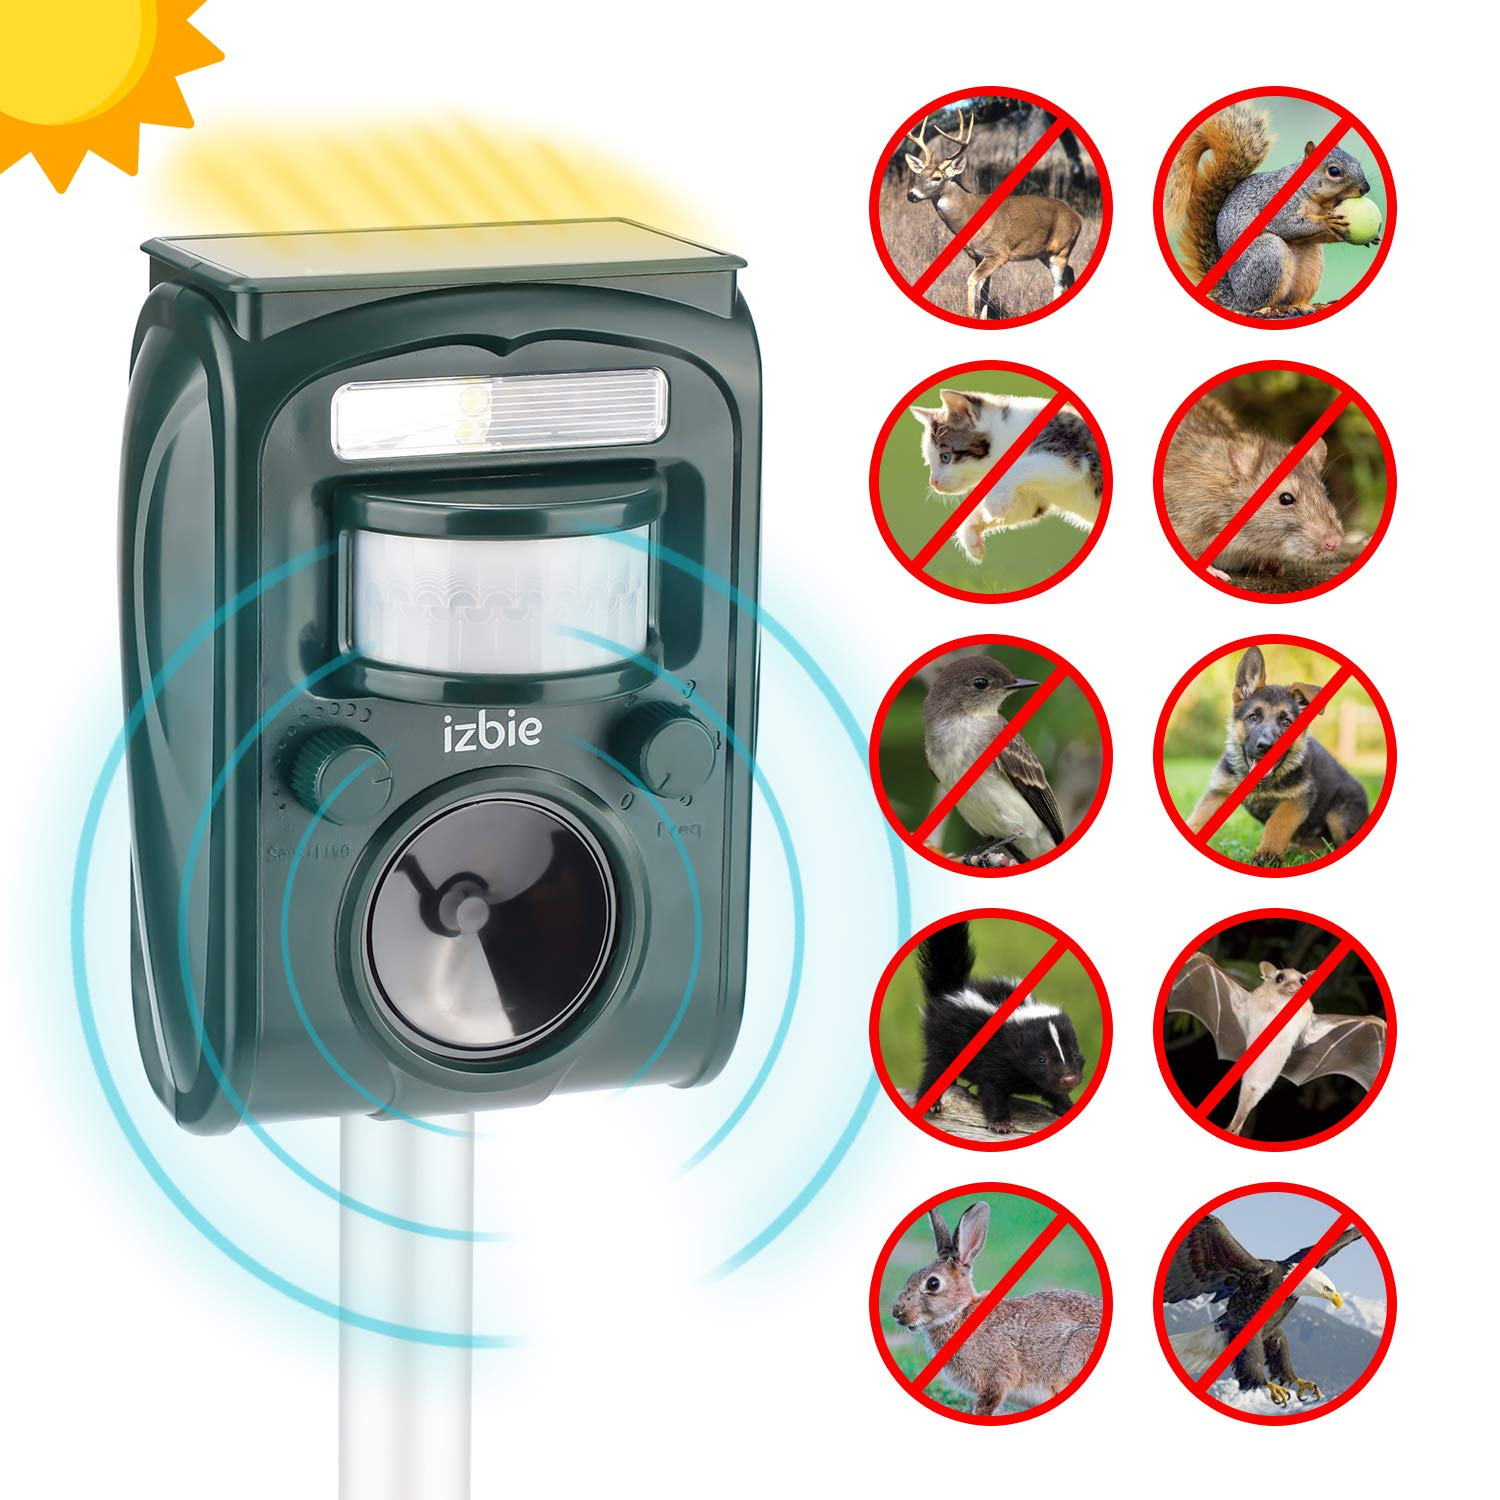 Izbie Ultrasonic Squirrel, Deer, Bird Repellent - Waterproof Effective Outdoor Electronic Deterrent for Rodent, Mouse, Cat, Dog, Snake, Raccoon, Mole, Pest Repeller Control by Izbie